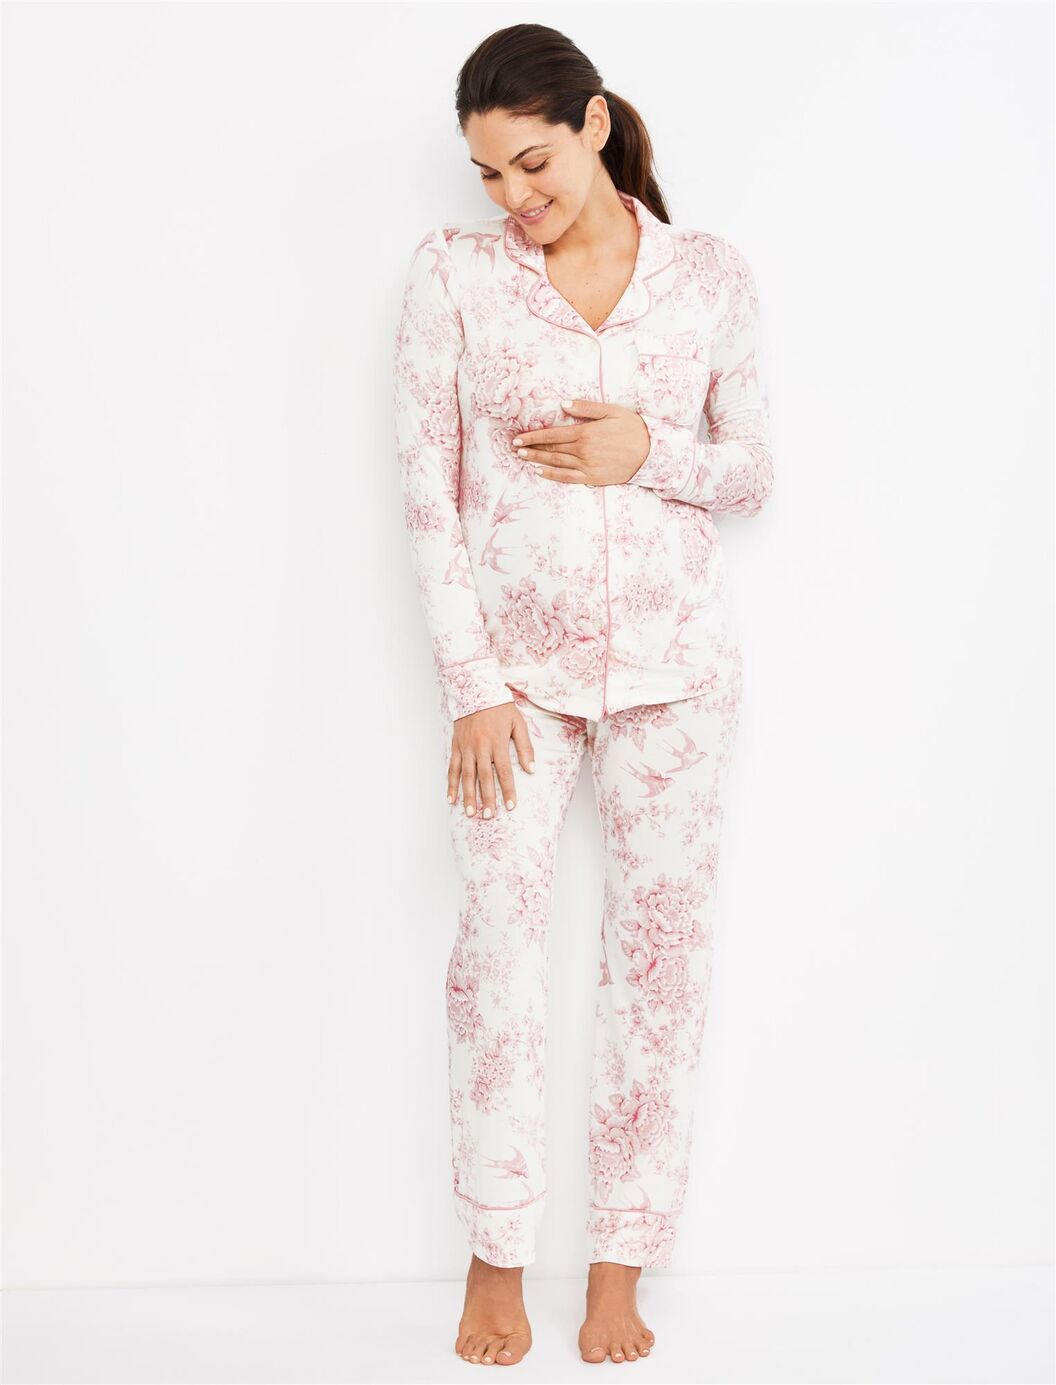 Button- Front Nursing Pajamas